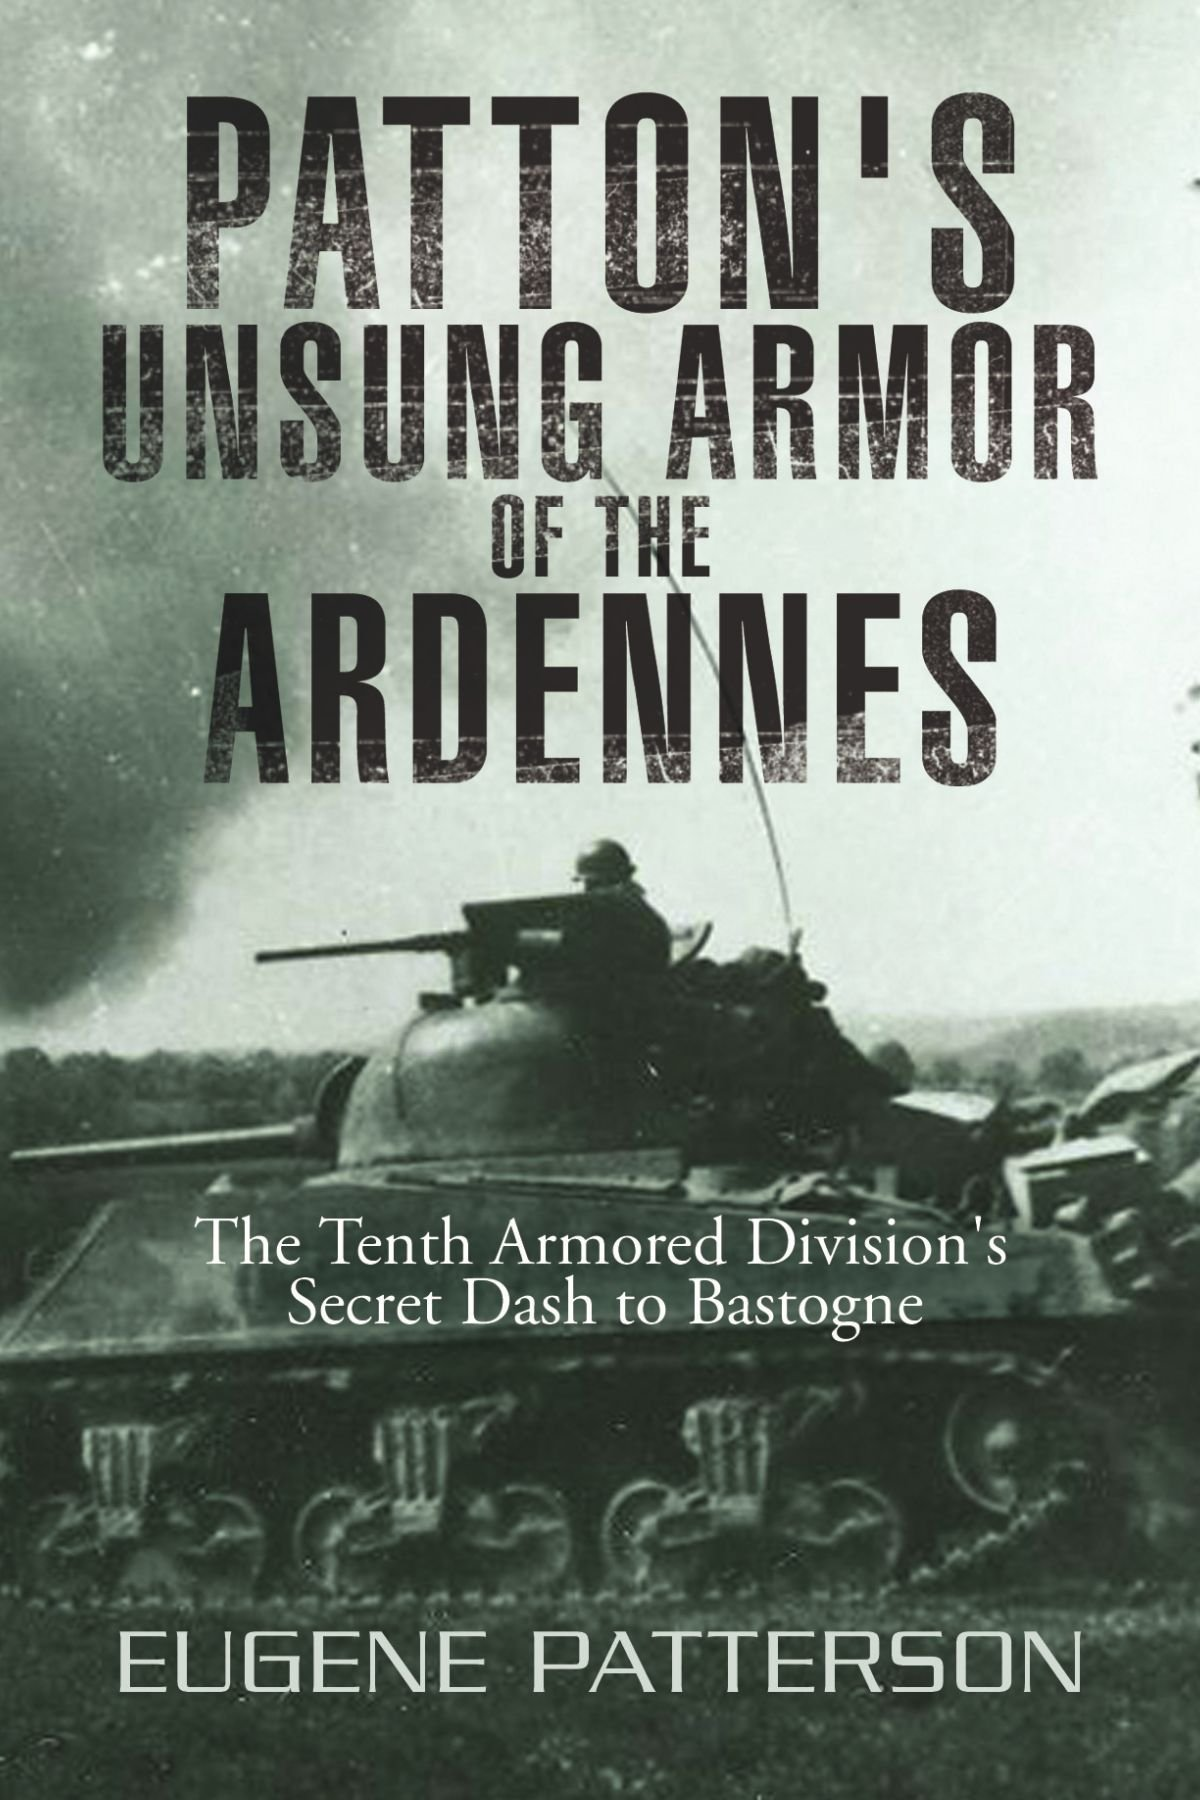 Download Patton's Unsung Armor of the Ardennes: The Tenth Armored Division's Secret Dash to Bastogne PDF